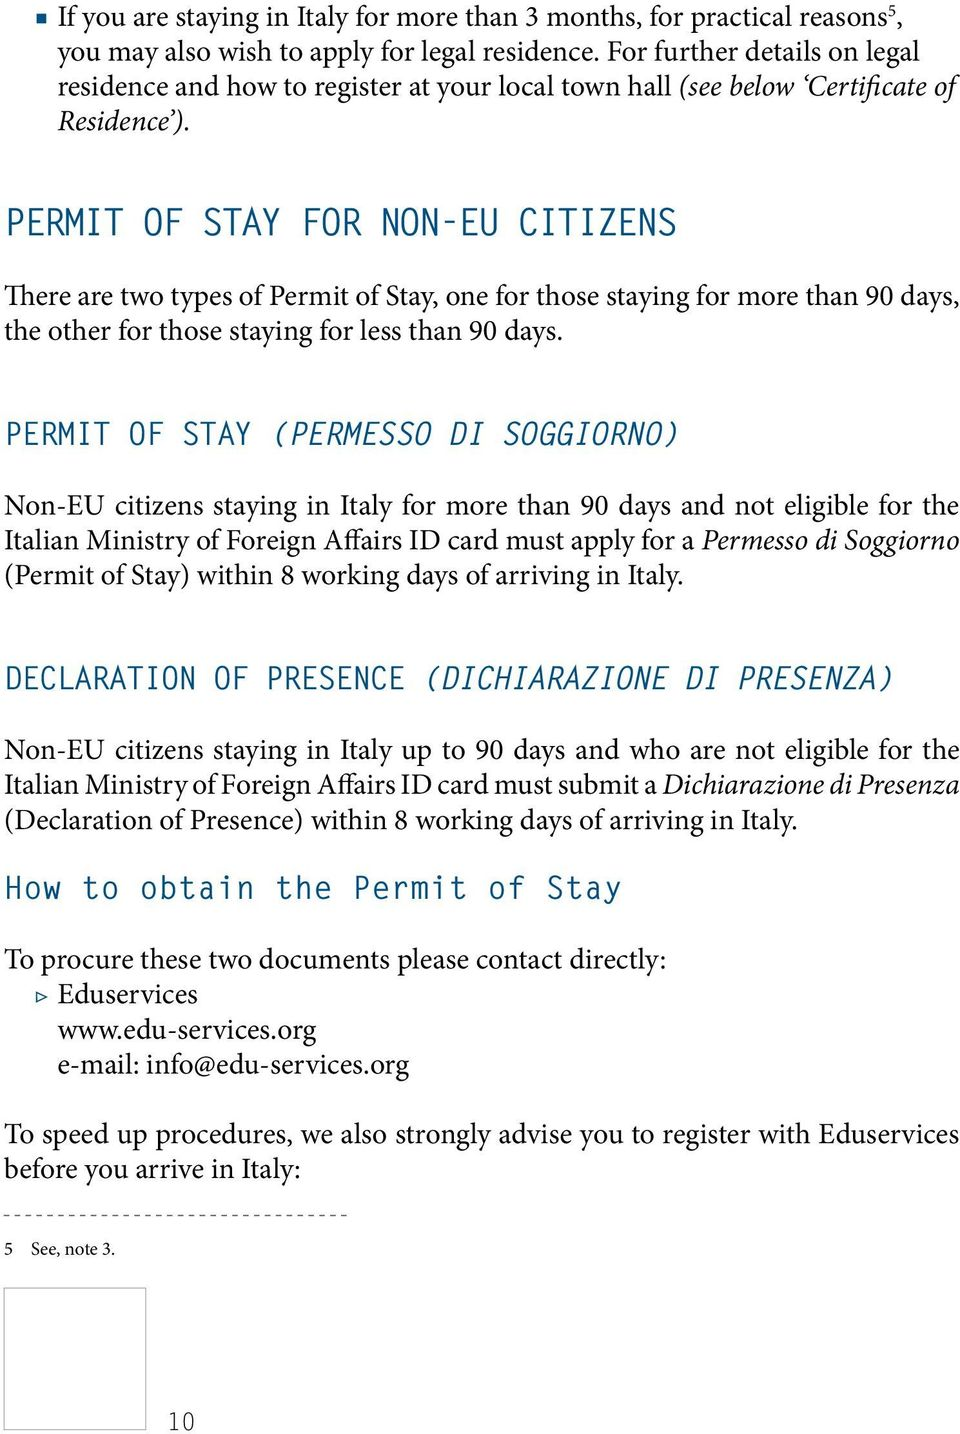 Permit of Stay for non-eu citizens There are two types of Permit of Stay, one for those staying for more than 90 days, the other for those staying for less than 90 days.